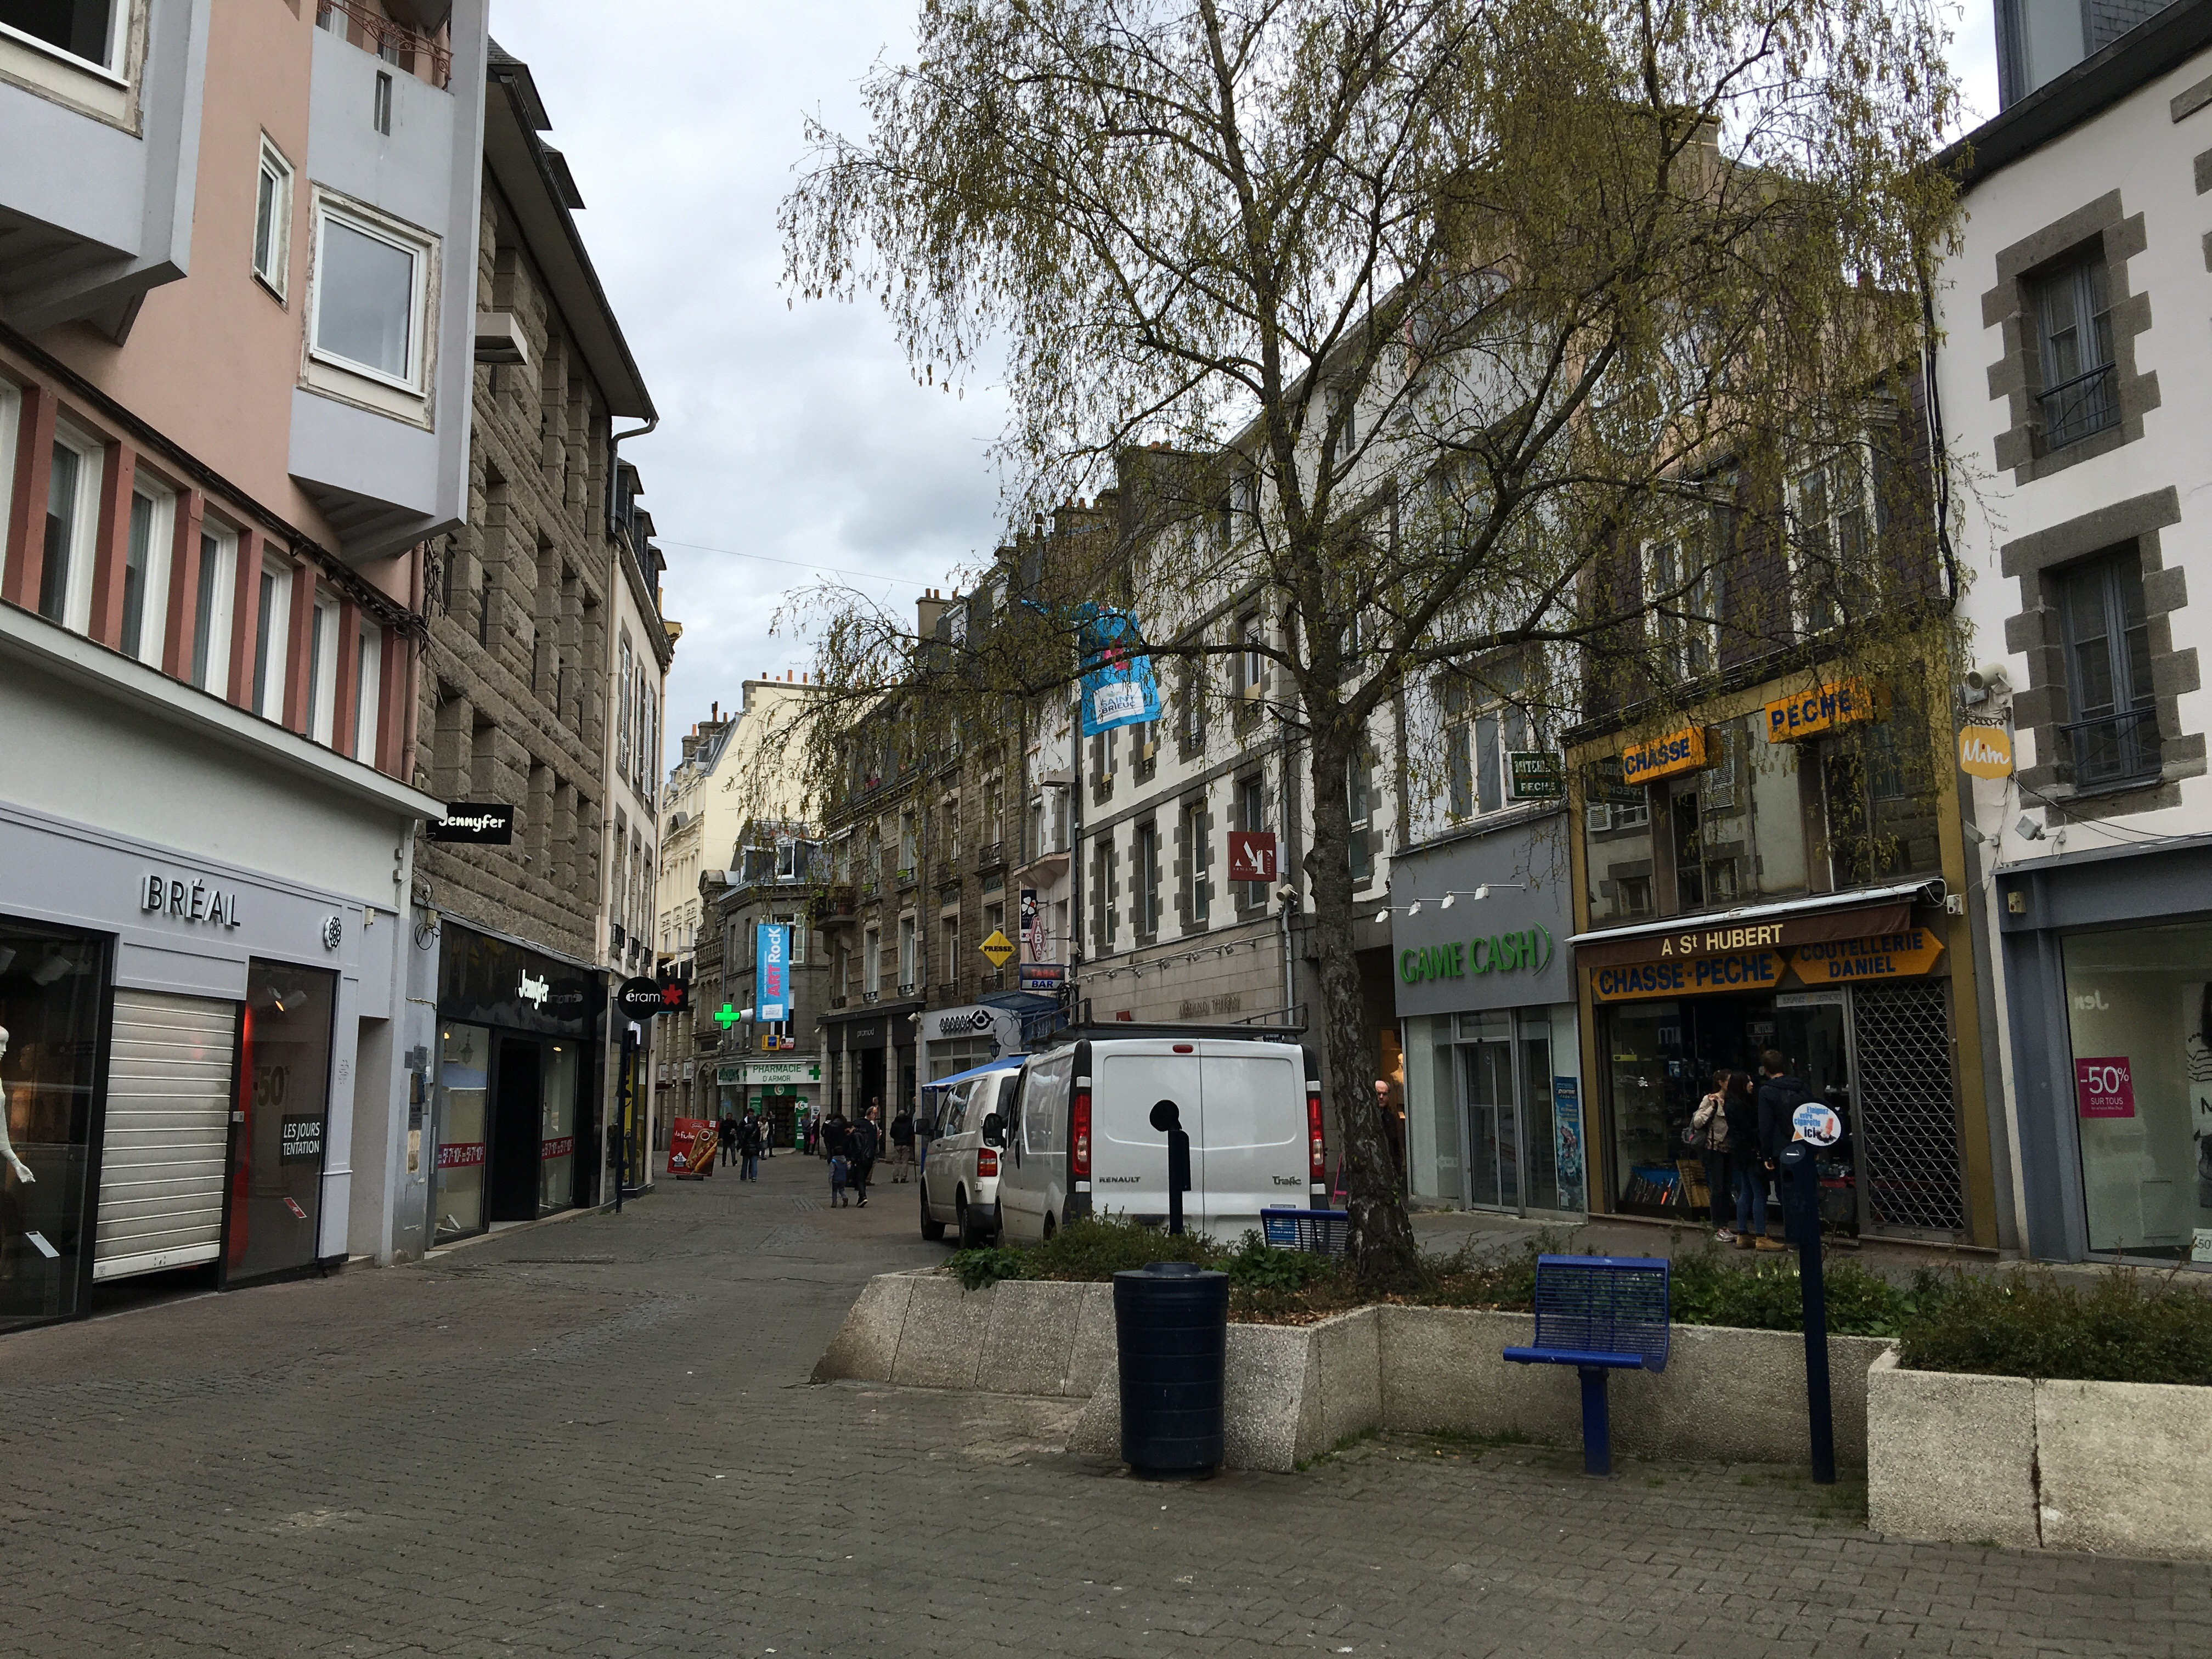 France: St. Brieuc – Daily Dose of Jam